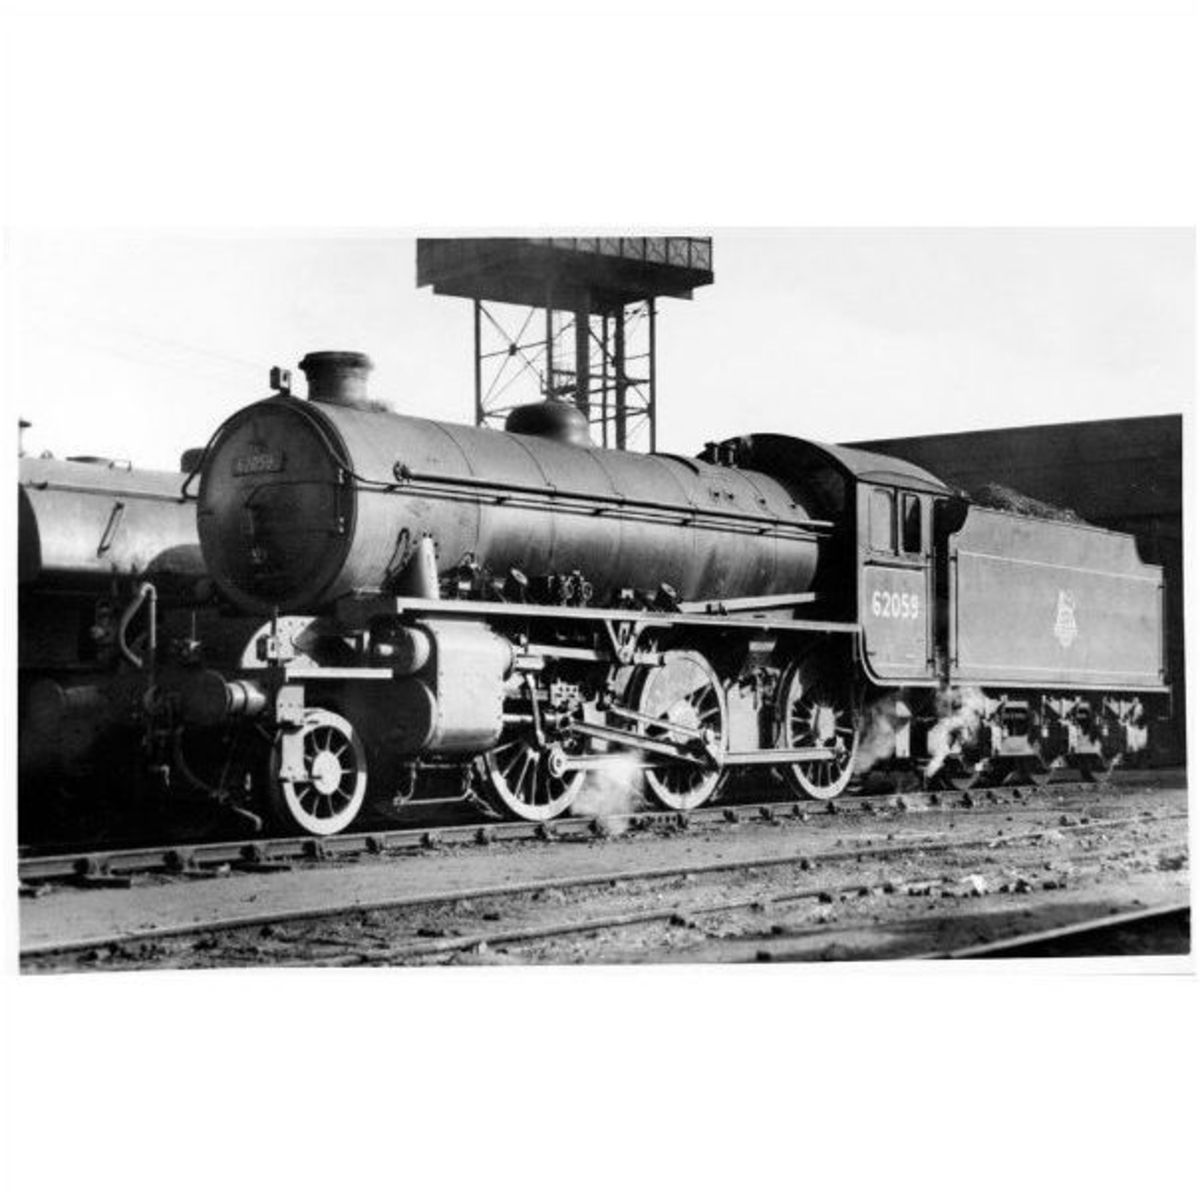 Or you might want to model mid-20th Century British Railways steam... based on a motive power depot, or have a depot as part of a layout.